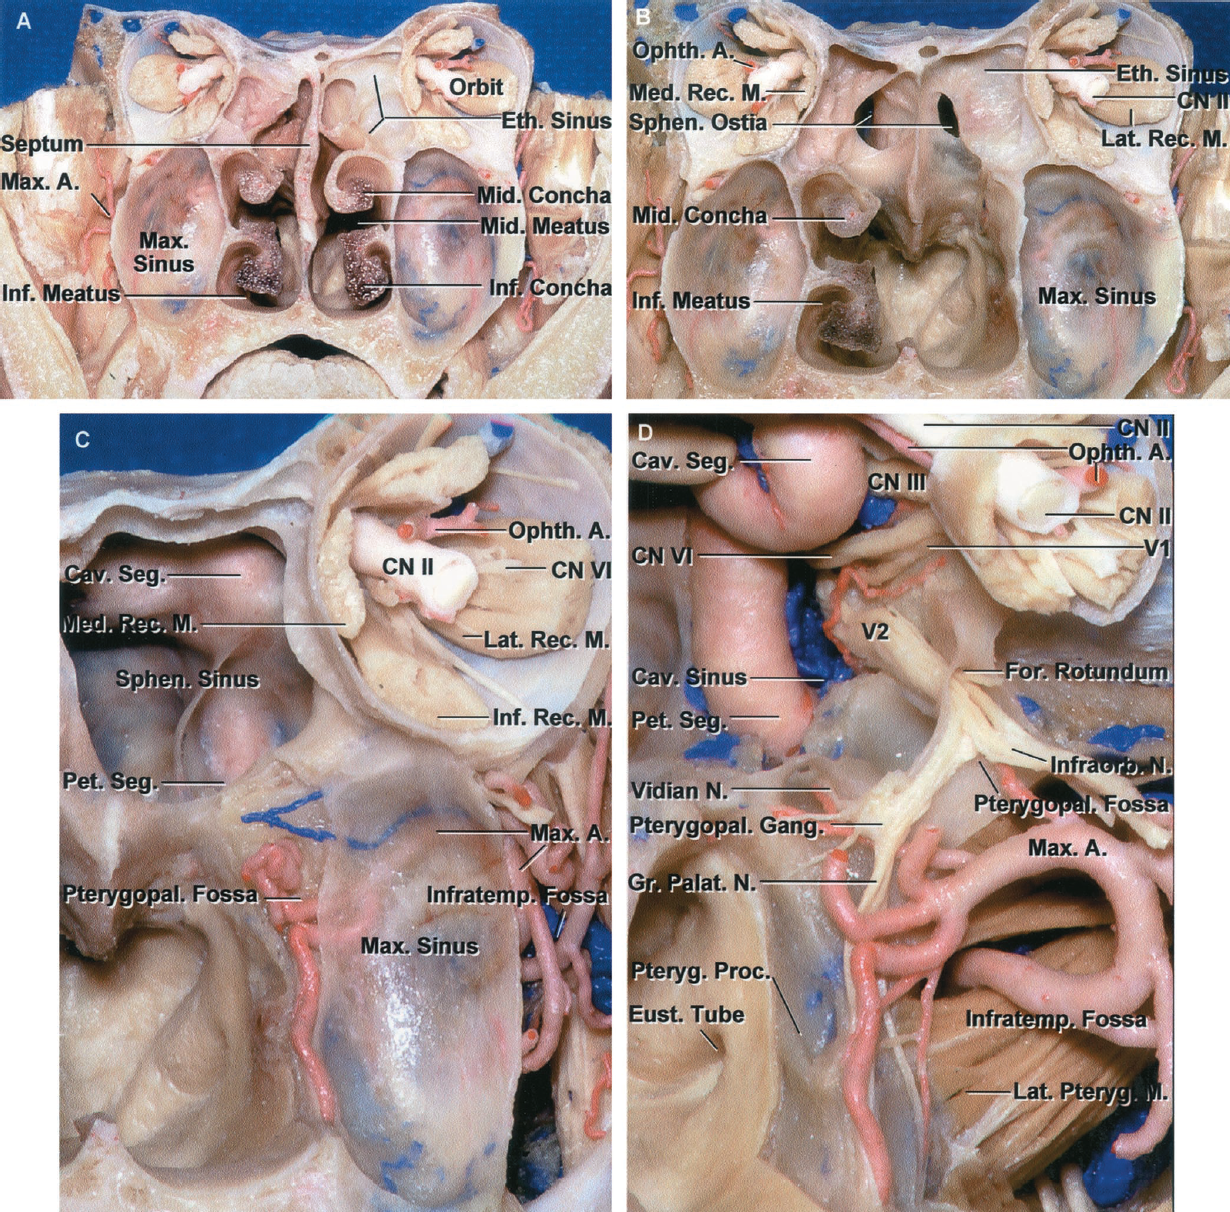 FIGURE 6.10. A, anterior view of a coronal section, anterior to the sphenoid sinus, through the nasal cavity, orbits, and maxillary sinuses. The upper part of the nasal cavity is separated from the orbits by the ethmoidal sinuses. The lower part of the nasal cavity is bounded laterally by the maxillary sinuses. The middle concha projects medially from the lateral nasal wall at the junction of the roof of the maxillary and ethmoidal sinuses. The posterior ethmoid air cells are located in front of the lateral part of the sphenoid sinus. B, the middle and inferior nasal conchae on the left side and the nasal septum and the posterior ethmoidal sinuses on both sides have been removed to expose the posterior nasopharyngeal wall, the anterior aspect of the sphenoid body, and the sphenoid ostia. The posterior ethmoid air cells overlap the lateral margin of the sphenoid ostia. C, enlarged view showing the relationships of the nasal cavity, pterygopalatine and infratemporal fossae, orbit, and sphenoid sinus. The nasopharynx is located below the sphenoid sinus. The pterygopalatine fossa is located in the lateral wall of the nasal cavity behind the upper part of the maxillary sinus and below the orbital apex. The posterior maxillary wall is so thin that the maxillary artery coursing in the pterygopalatine fossa can be seen through the bone. The sphenopalatine branch of the maxillary artery passes through the sphenopalatine foramen to reach the walls of the nasal cavity and the sphenoid face. D, the posterior wall of the maxillary sinus has been removed to expose the pterygopalatine and infratemporal fossae and the internal carotid artery and nerves coursing through the cavernous sinus. The maxillary artery passes through the infratemporal fossa and enters the pterygopalatine fossa, where it gives rise to branches that follow the branches of the maxillary nerve. Some of these arteries course along the sphenoid face where careful hemostasis during transsphenoidal surgery reduces the need for nasal packing after transsphenoidal operations. The maxillary nerve exits the foramen rotundum to enter the pterygopalatine fossa, where it gives rise to the infraorbital and greater palatine nerves and communicating rami to the pterygopalatine ganglion. The eustachian tube opens into the nasopharynx along the posterior edge of the medial pterygoid plate. A., artery; Cav., cavernous; CN, cranial nerve; Eth., ethmoid; Eust., eustachian; For., foramen; Gr., greater; Inf., inferior; Infraorb., infraorbital; Infratemp., infratemporal; Lat., lateral; M., muscle; Max., maxillary; Med., medial; Mid., middle; N., nerve; Ophth., ophthalmic; Palat., palatine; Pet., petrosal; Proc., process; Pteryg., pterygoid; Pterygopal., pterygopalatine; Rec., rectus; Seg., segment; Sphen., sphenoid.